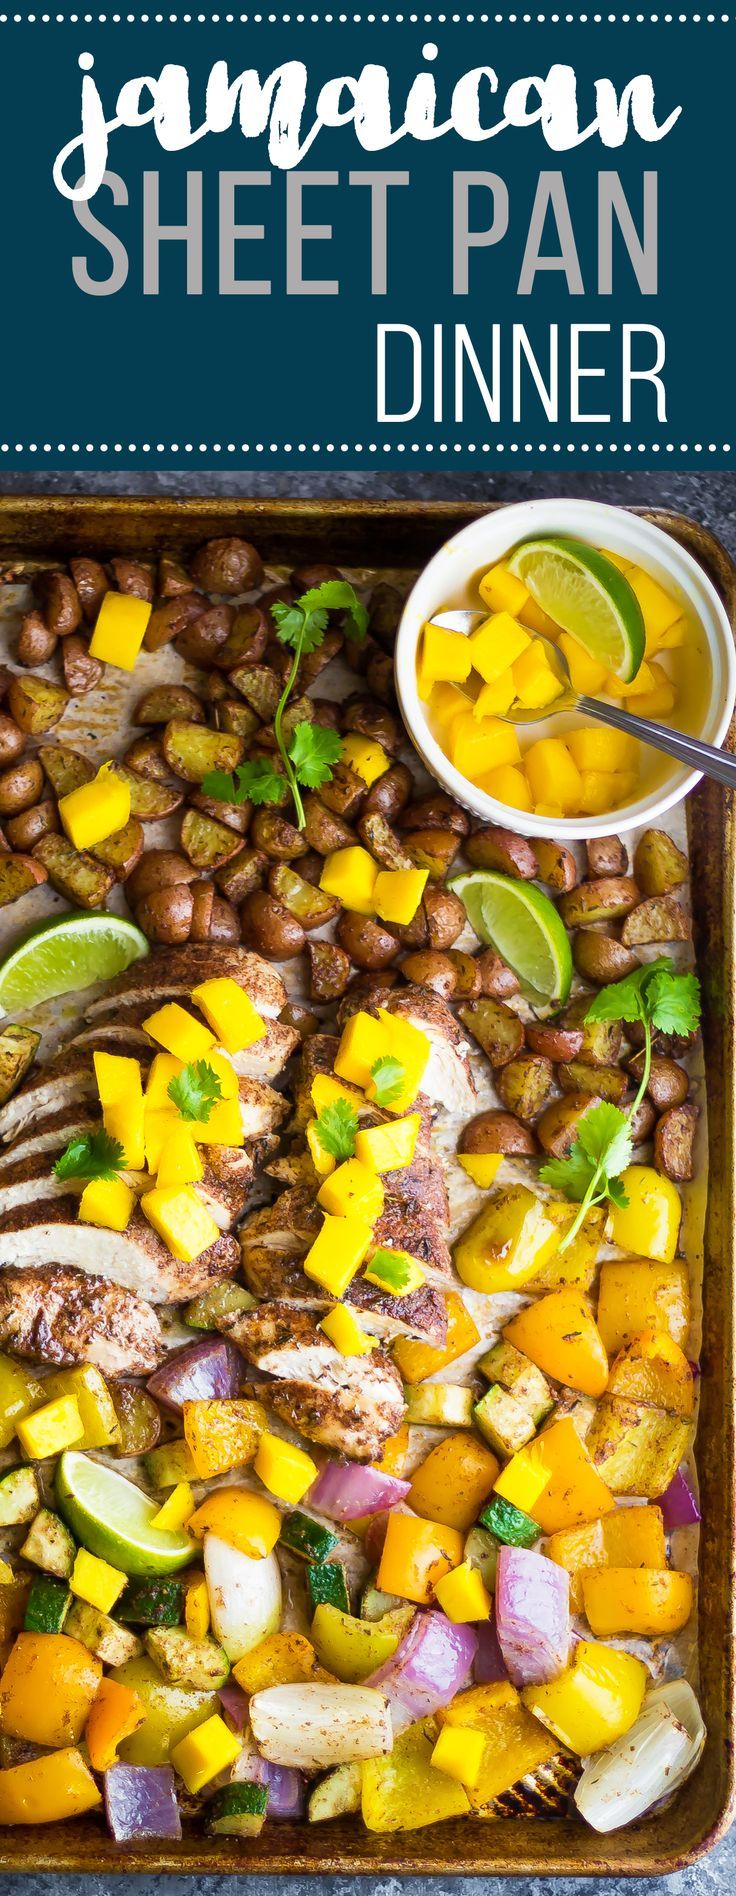 This Jamaican Chicken Sheet Pan Dinner is full of tropical spice and topped with fresh mango.  Ready in 30 minutes!